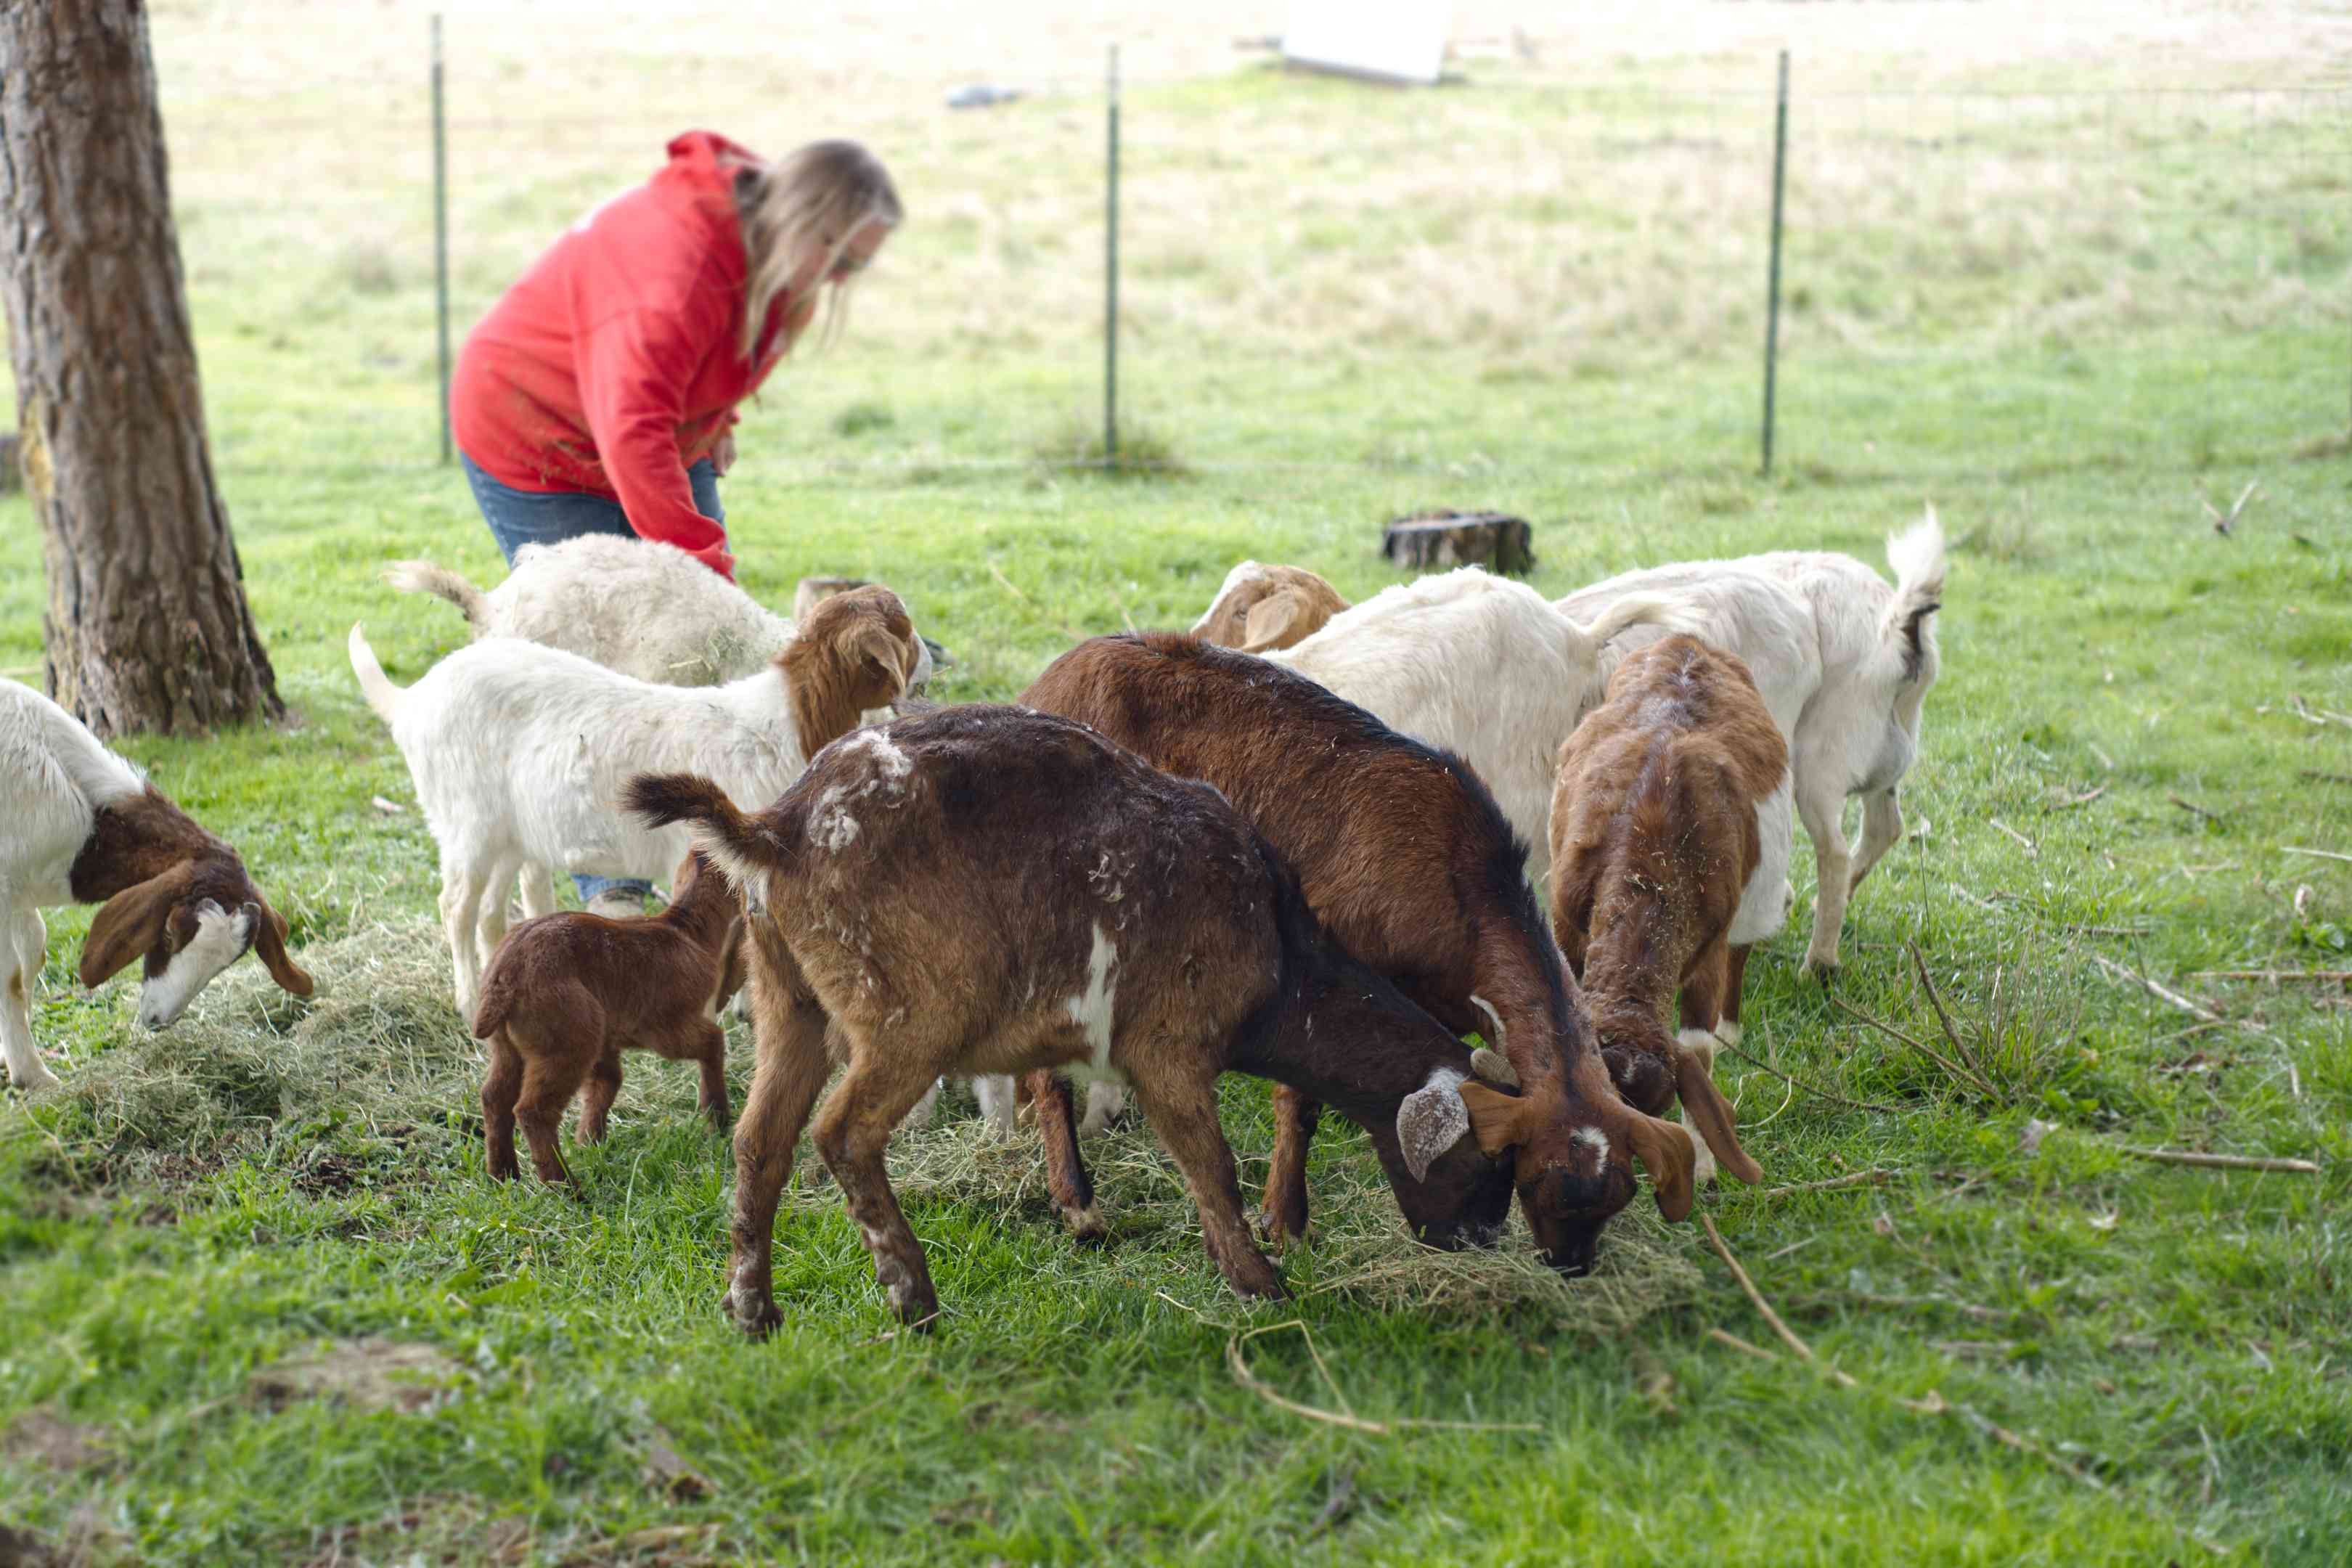 farmer in field attends to group of adult and baby goats eating hay in green grass